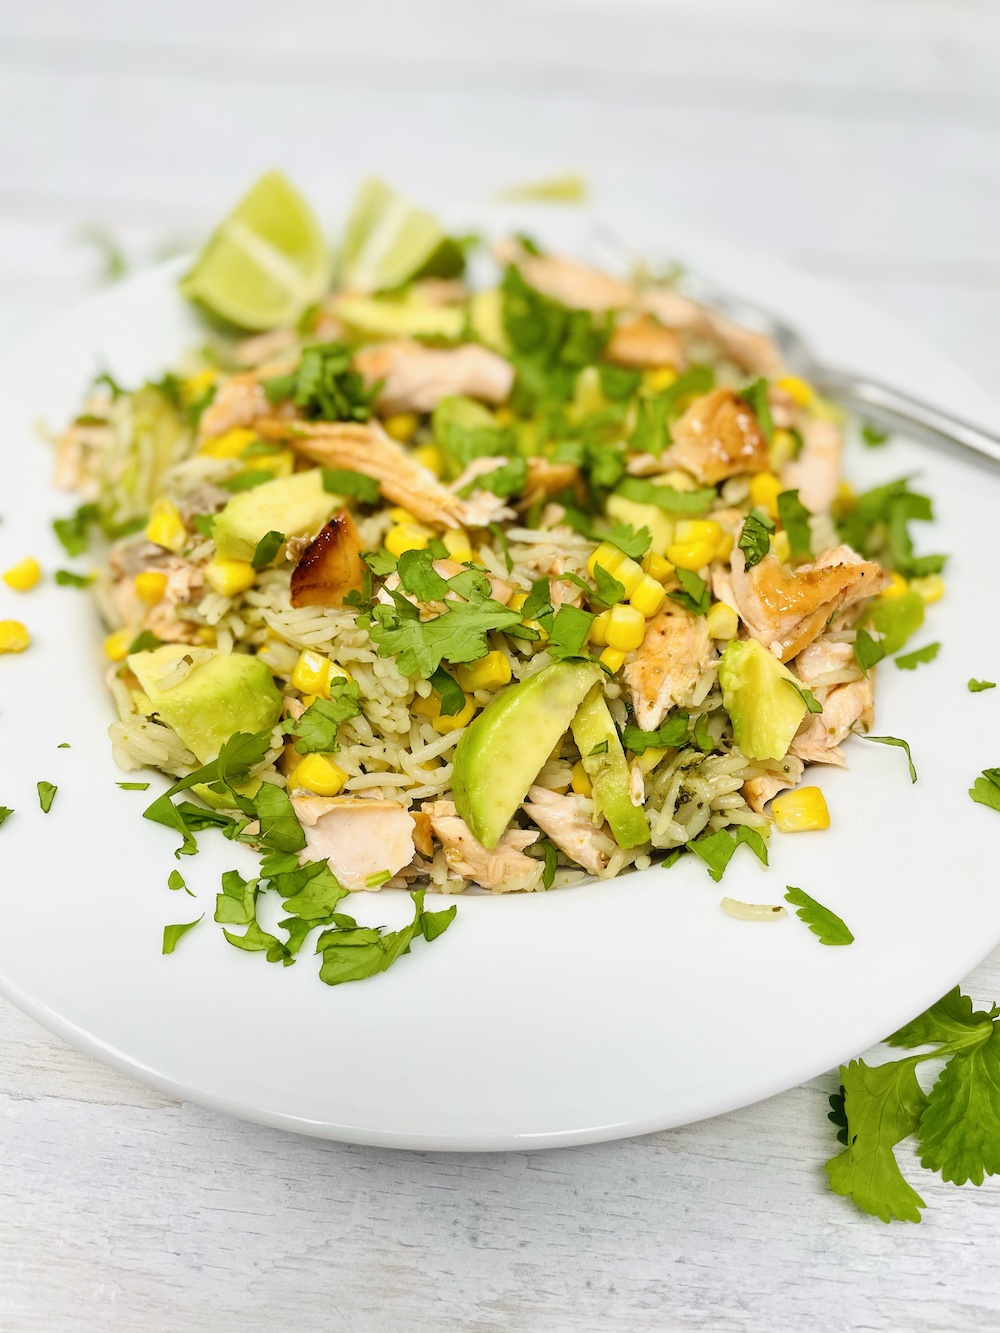 salmon and rice - a salmon salad with lime and coriander rice, charred corn and chunks of avocado served with a wedge of lime on the side